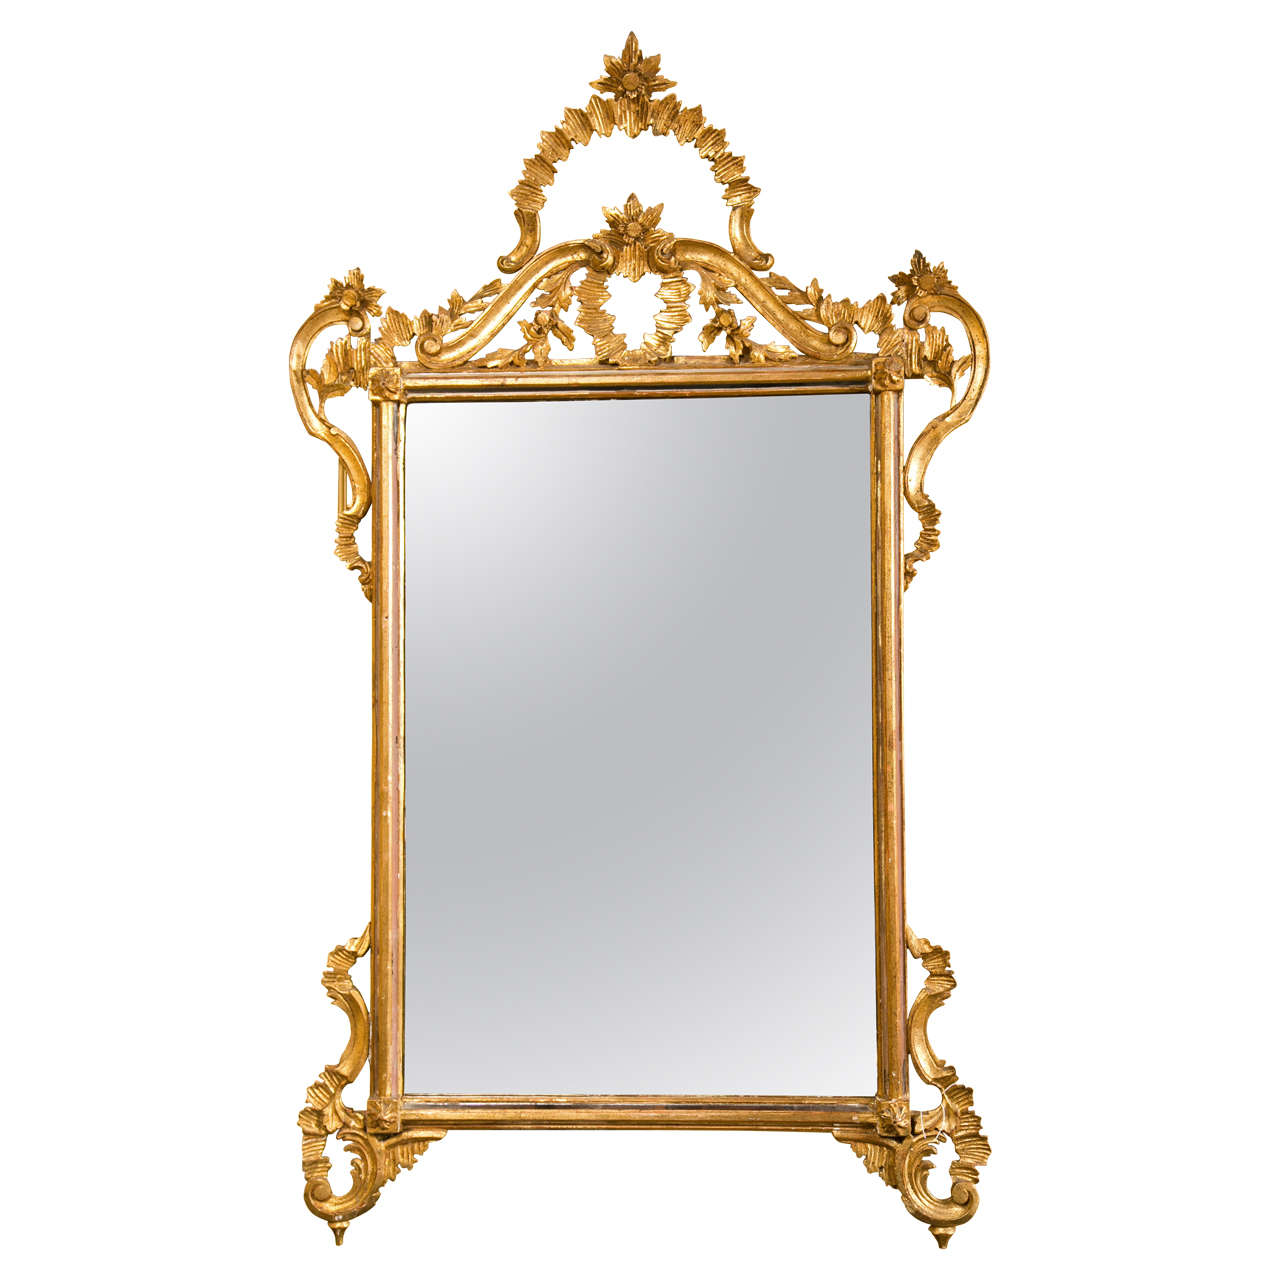 Decorative giltwood mirror for sale at 1stdibs for Fancy mirrors for sale